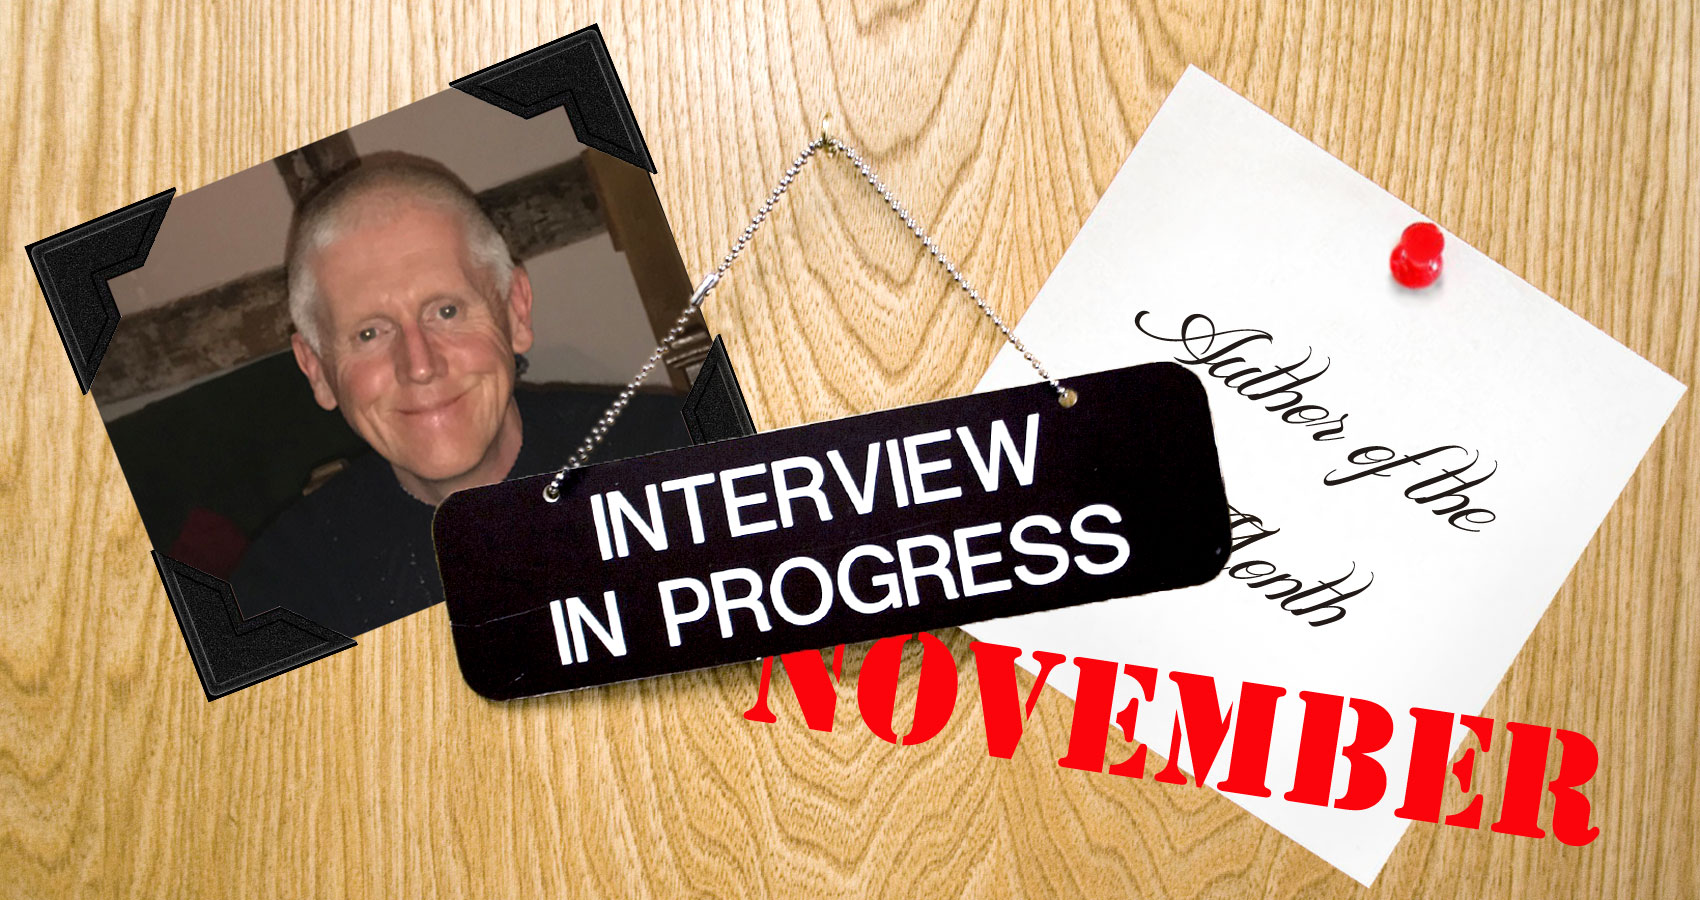 Interview Q&A With Richard Wall at Spillwords.com